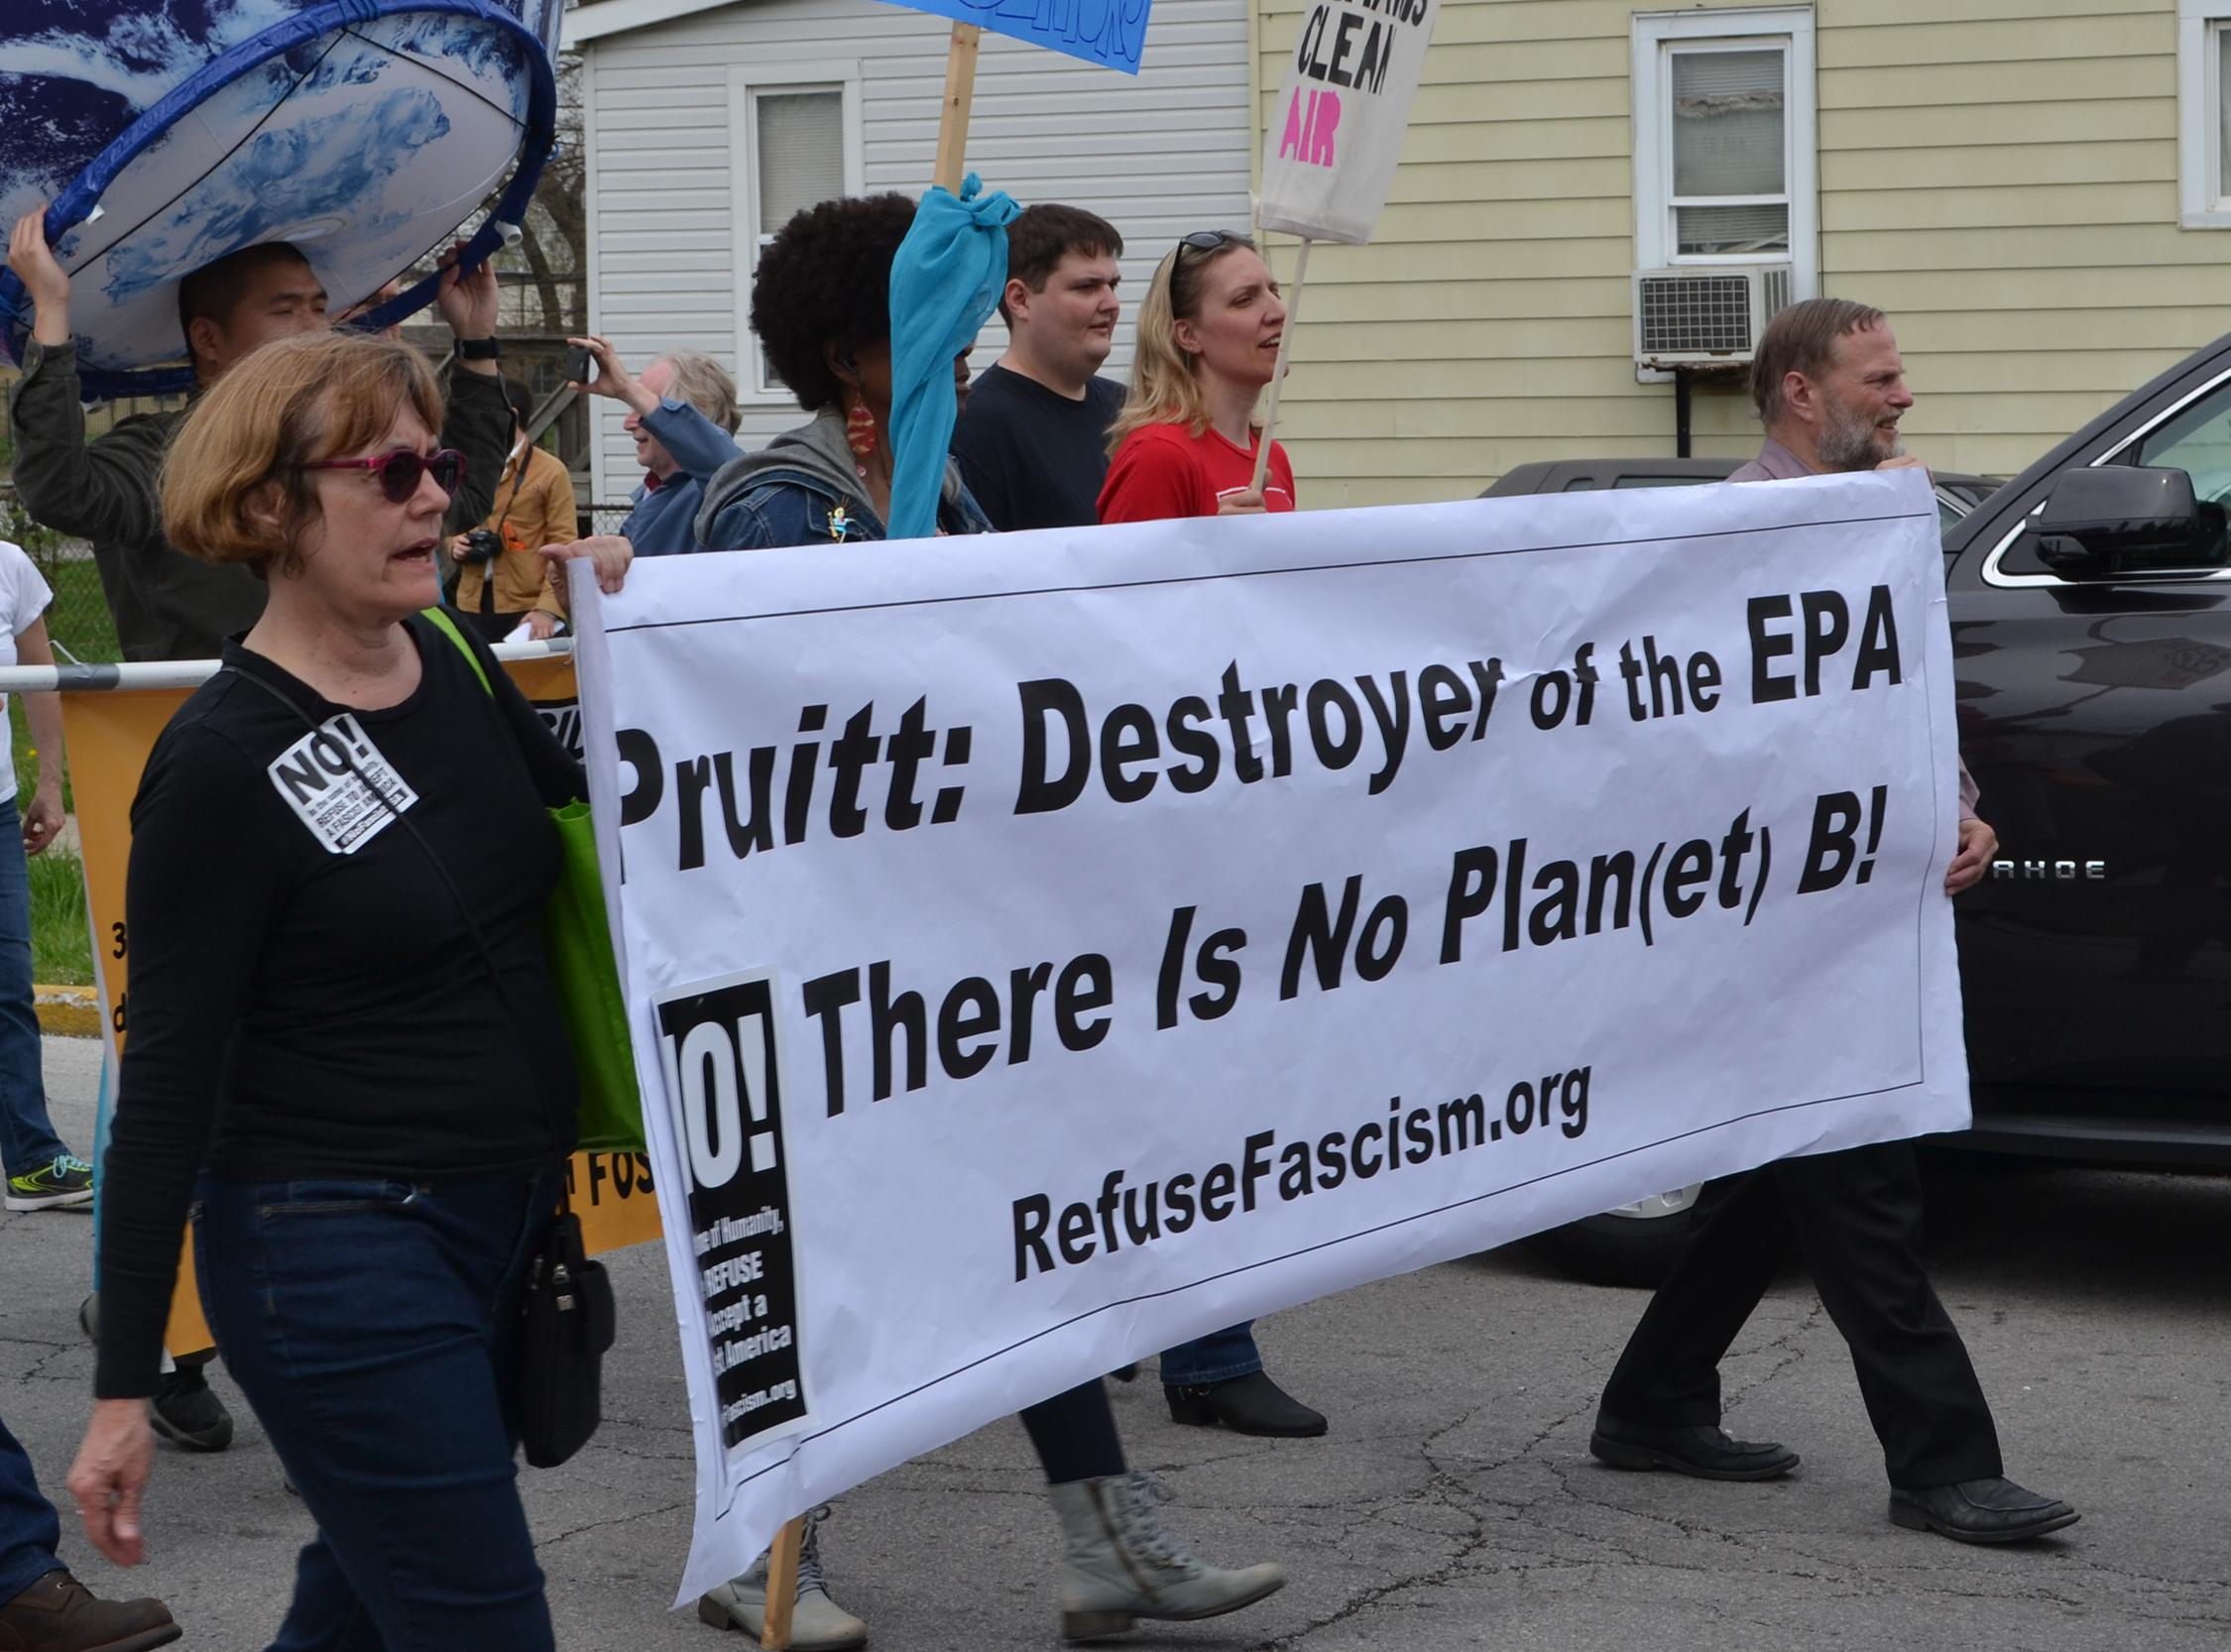 East Chicago residents and activists protest EPA head Scott Pruitt's visit April 19 to the city's lead-contaminated neighborhoods. (Alex Ruppenthal / Chicago Tonight)